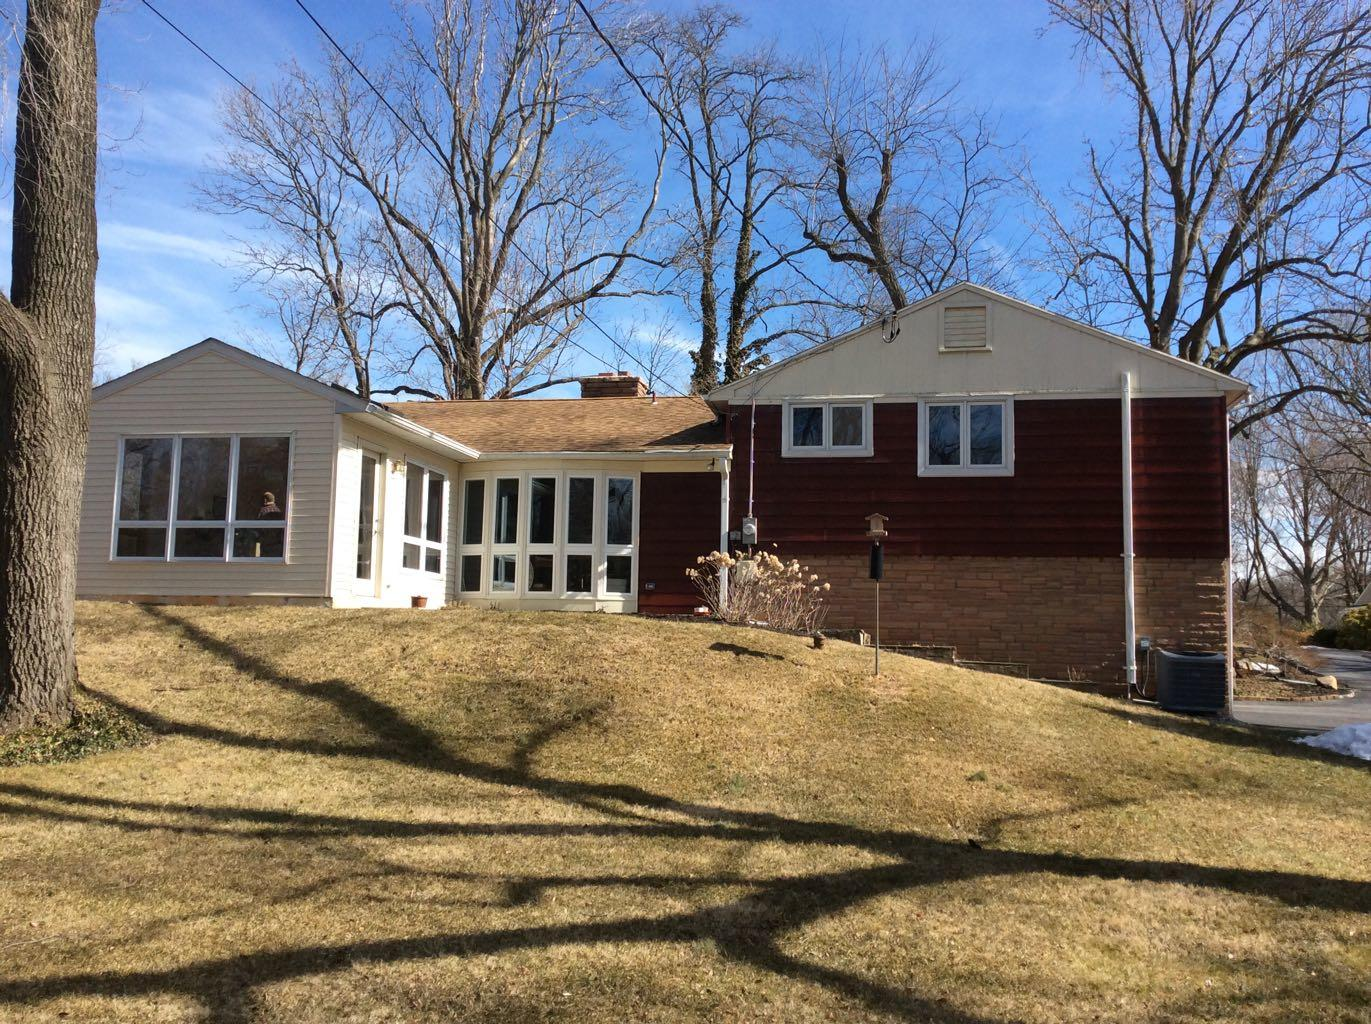 Roofing and Siding replacement in Paoli - Like a new house! - Before Photo